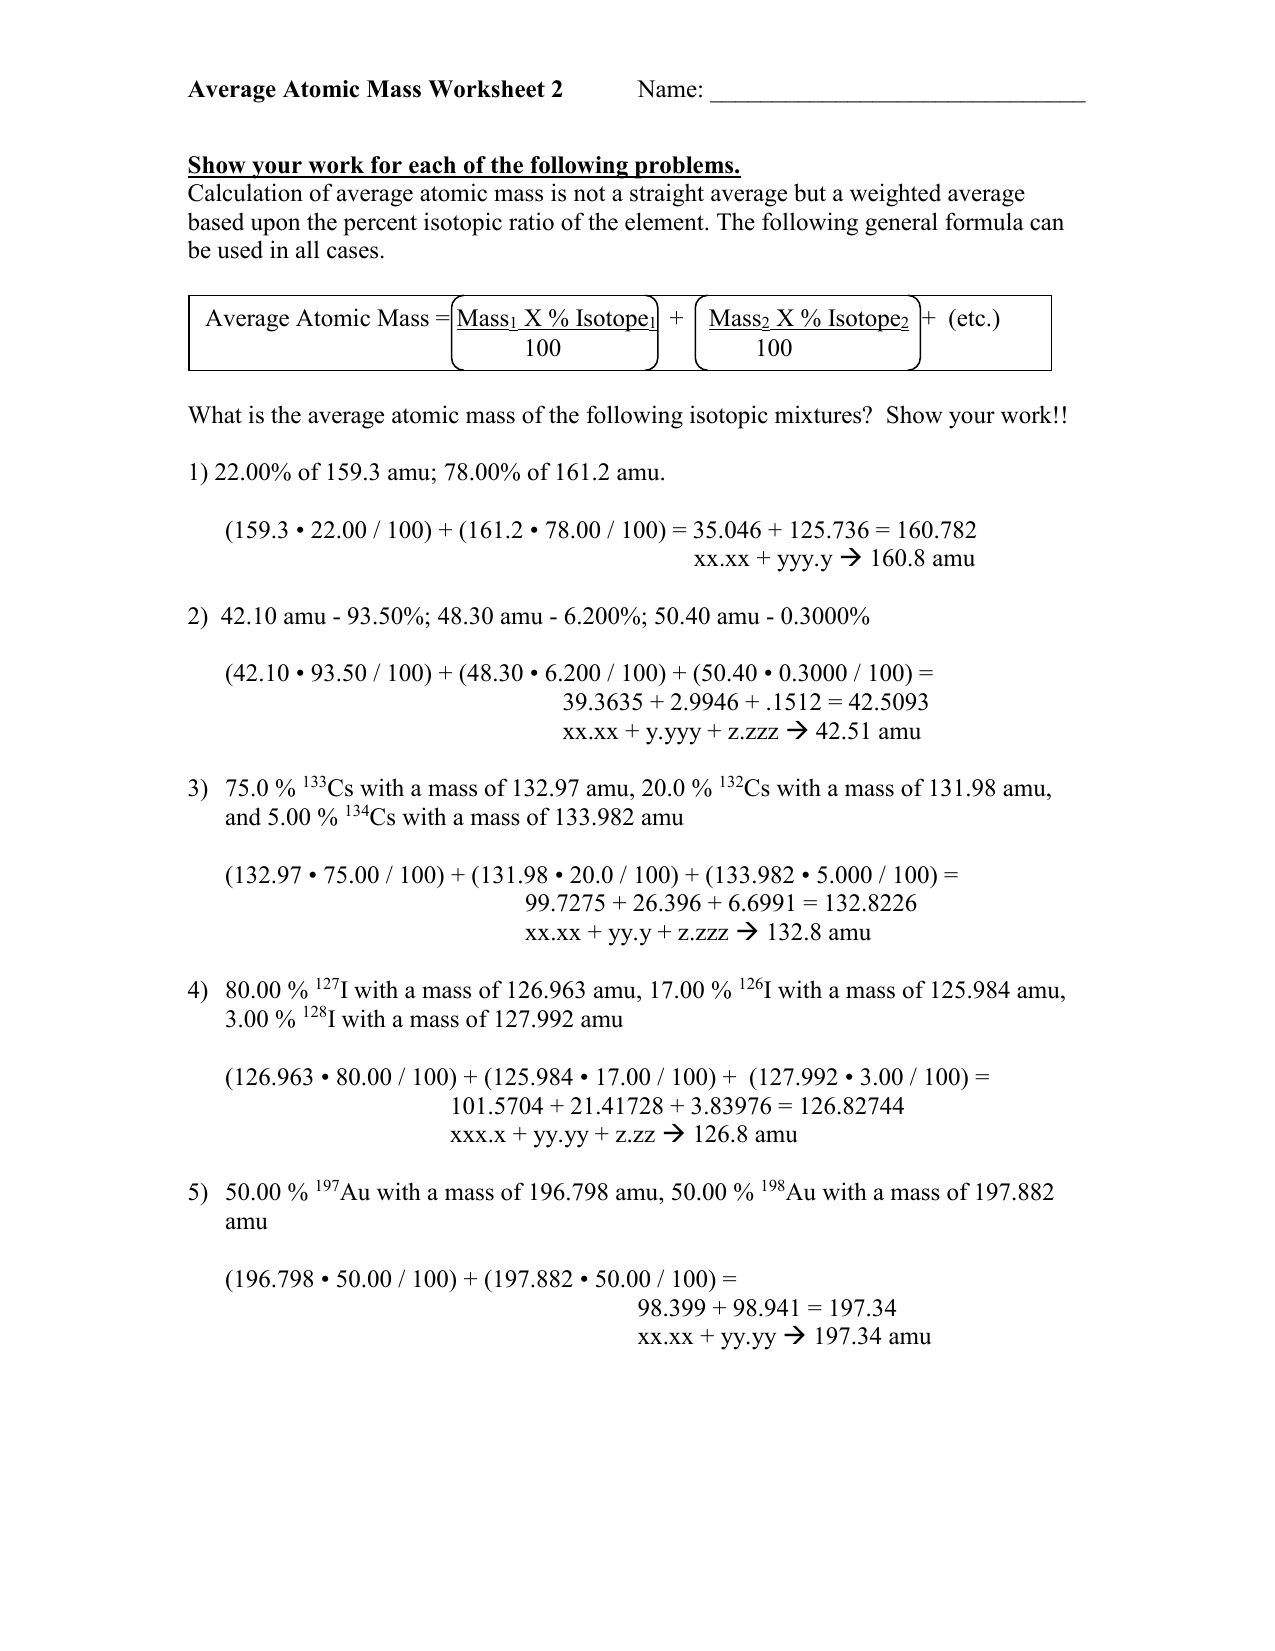 31 Calculating Average Atomic Mass Worksheet